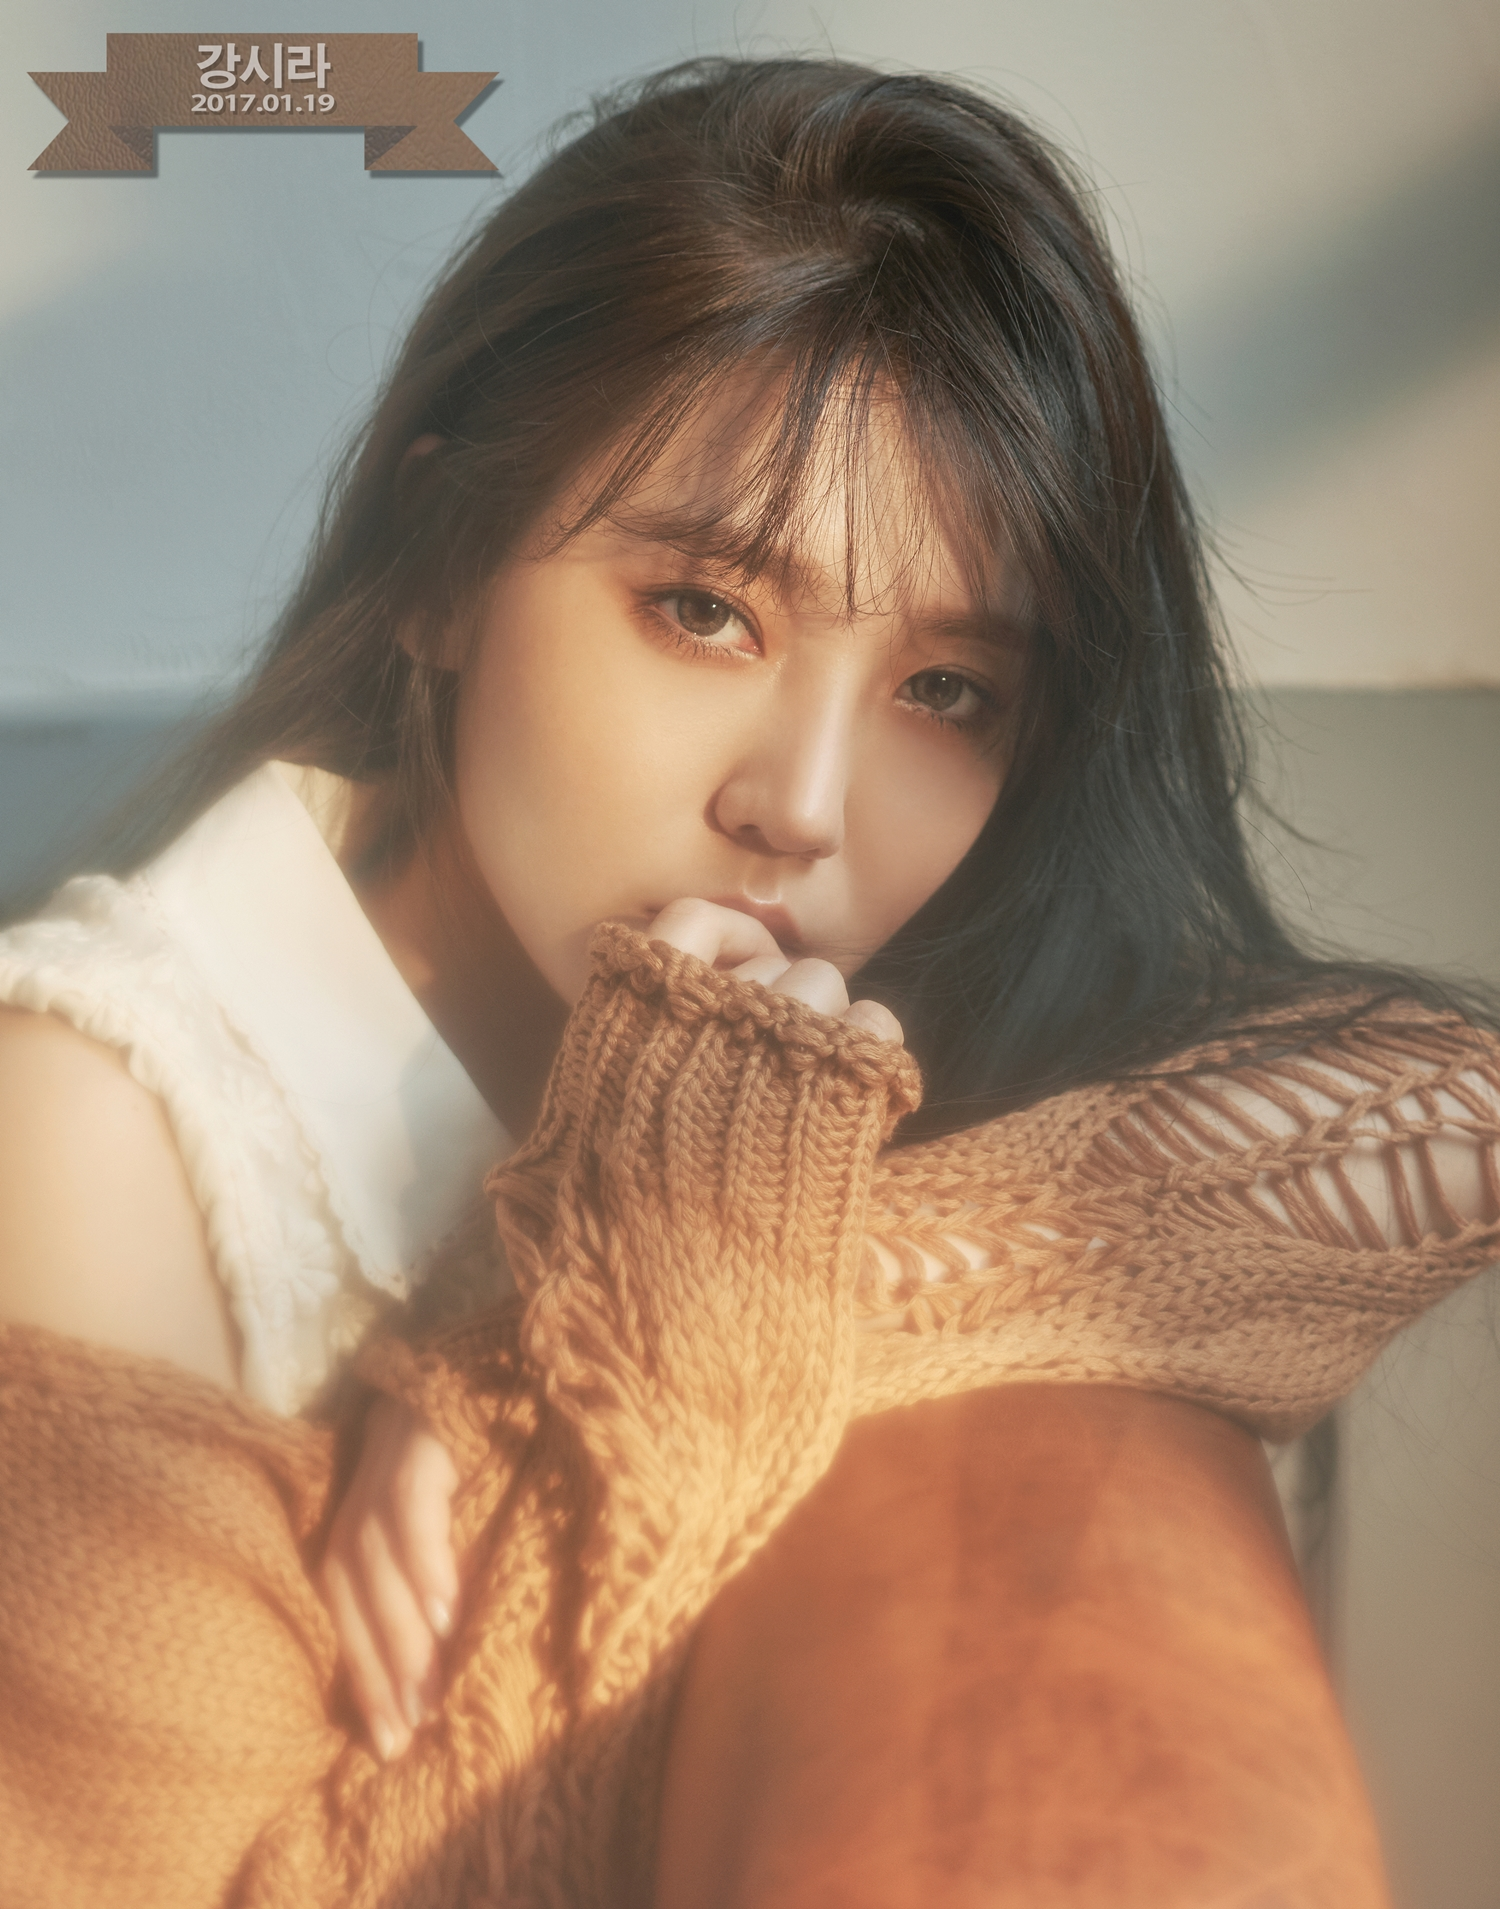 Kang SiRa Profile: Produce 101's 22nd Place Contestant to Debut